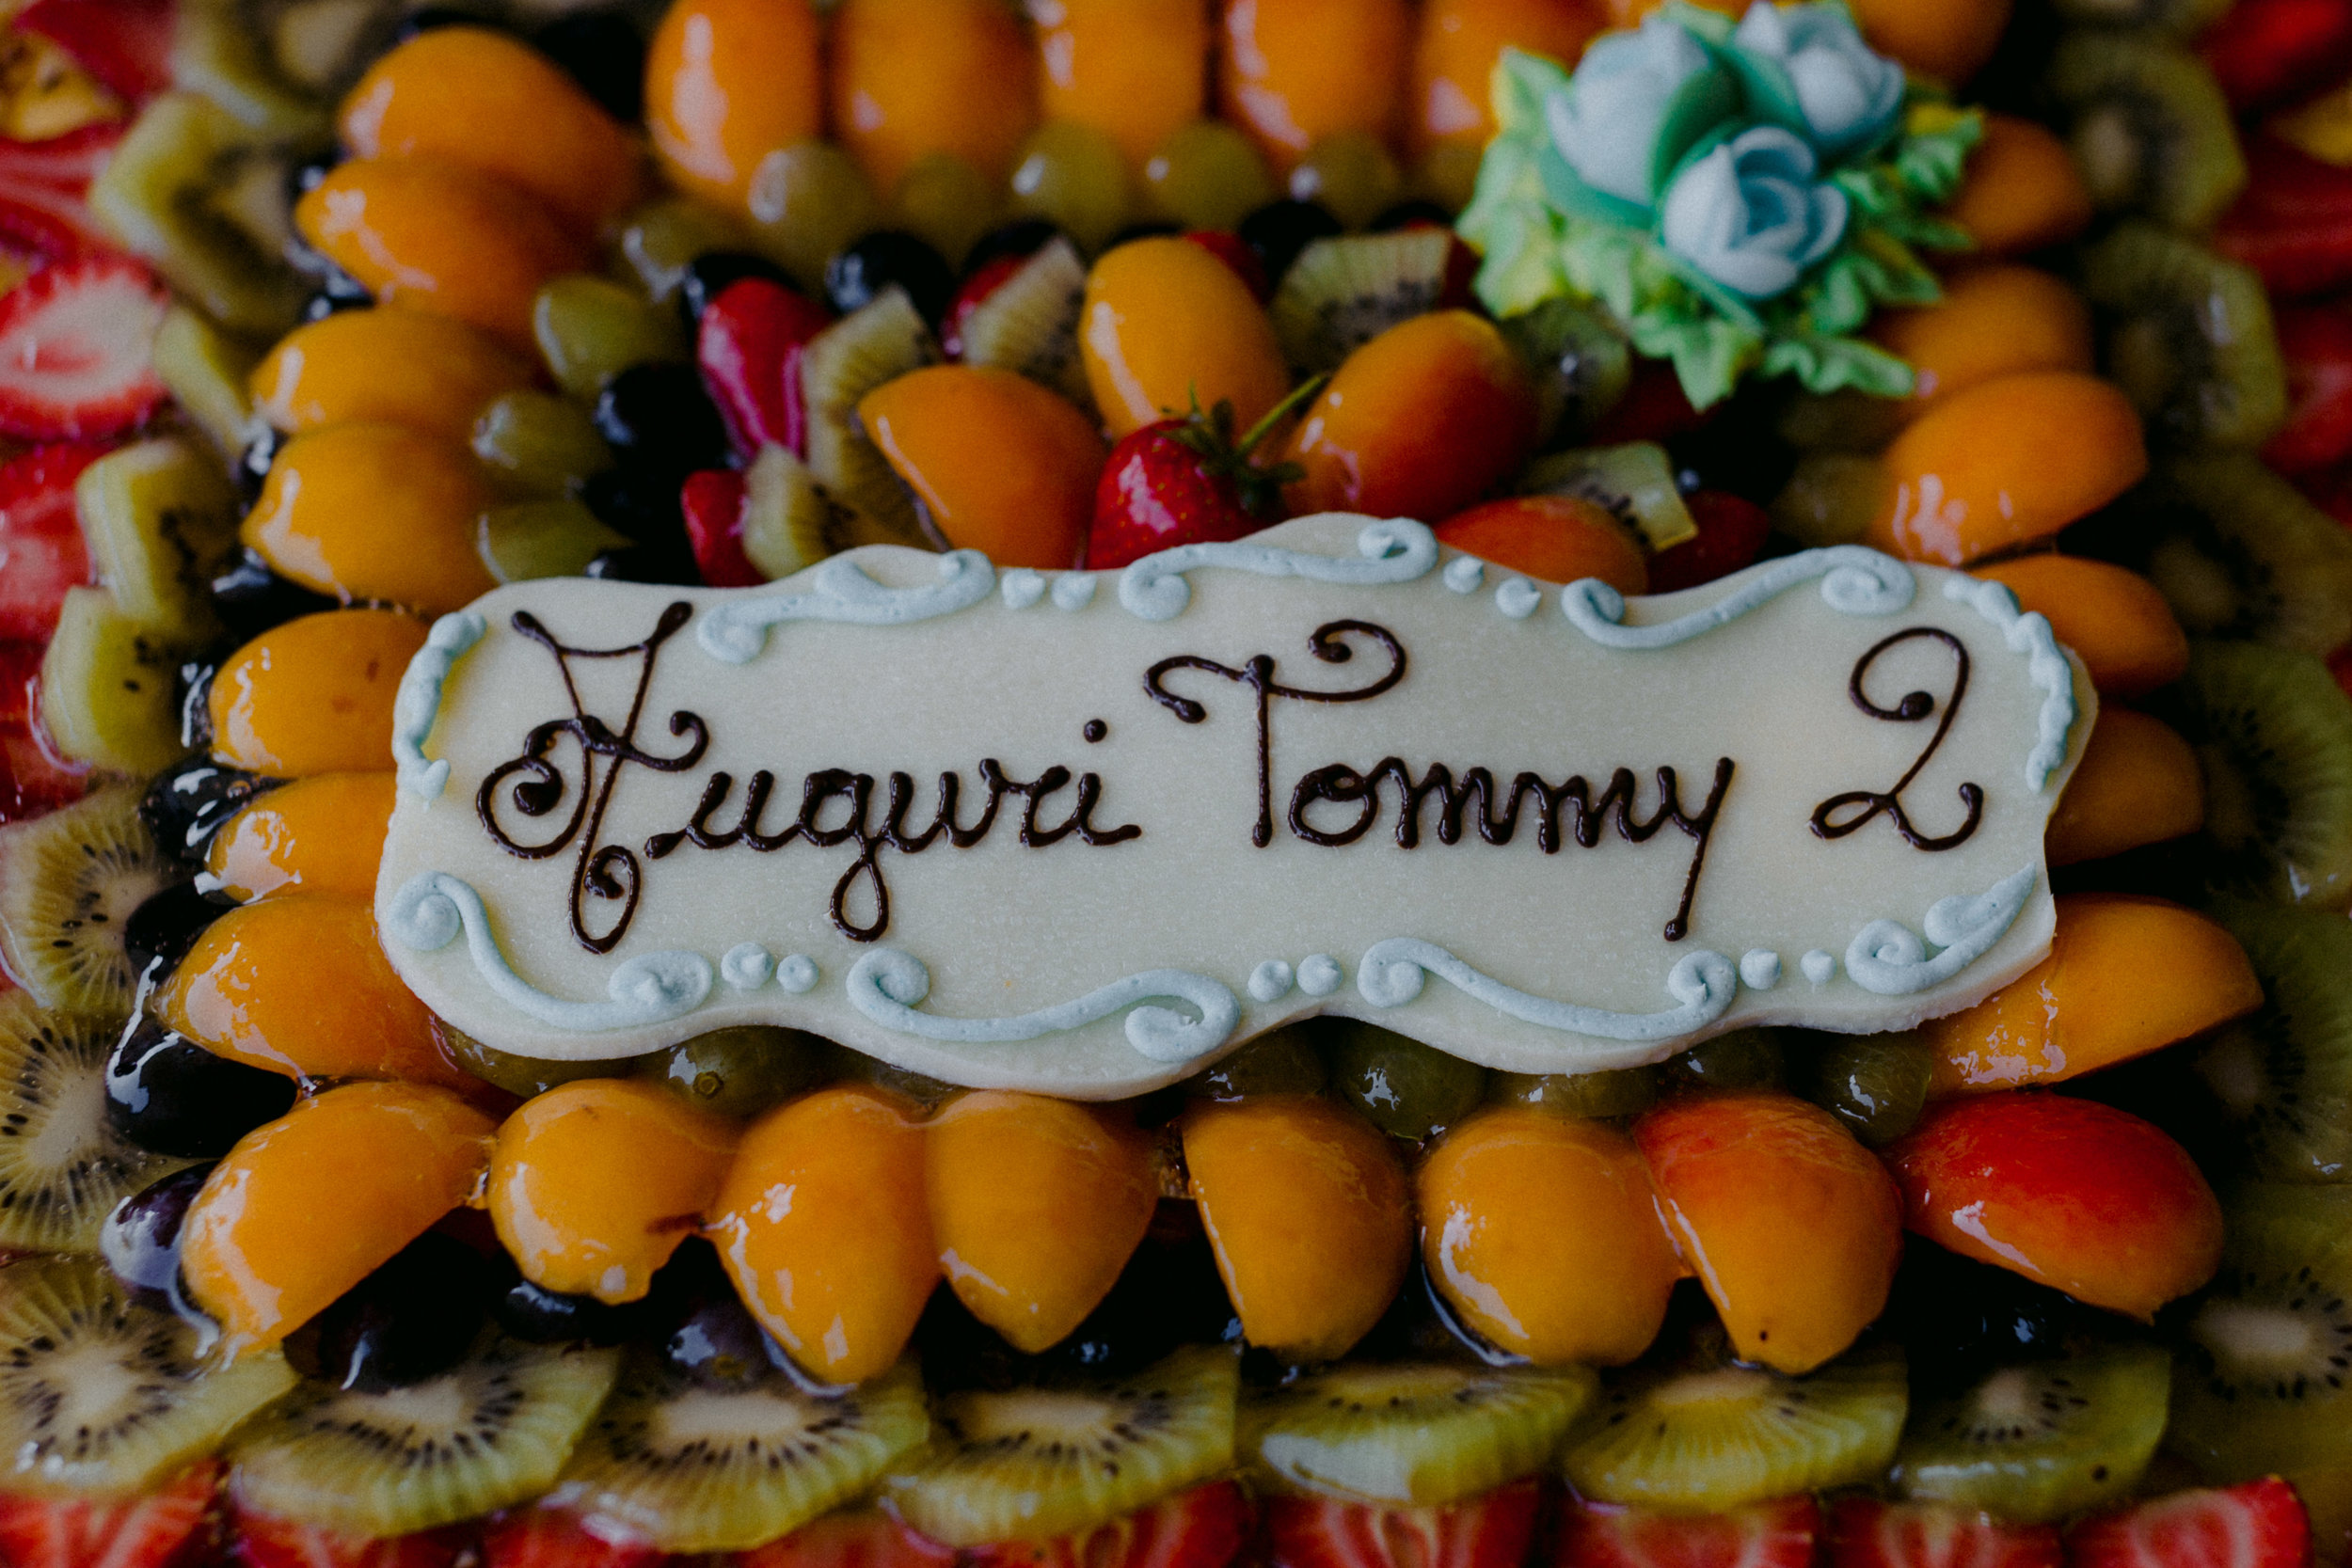 001 - compleanno Tommy-3.JPG